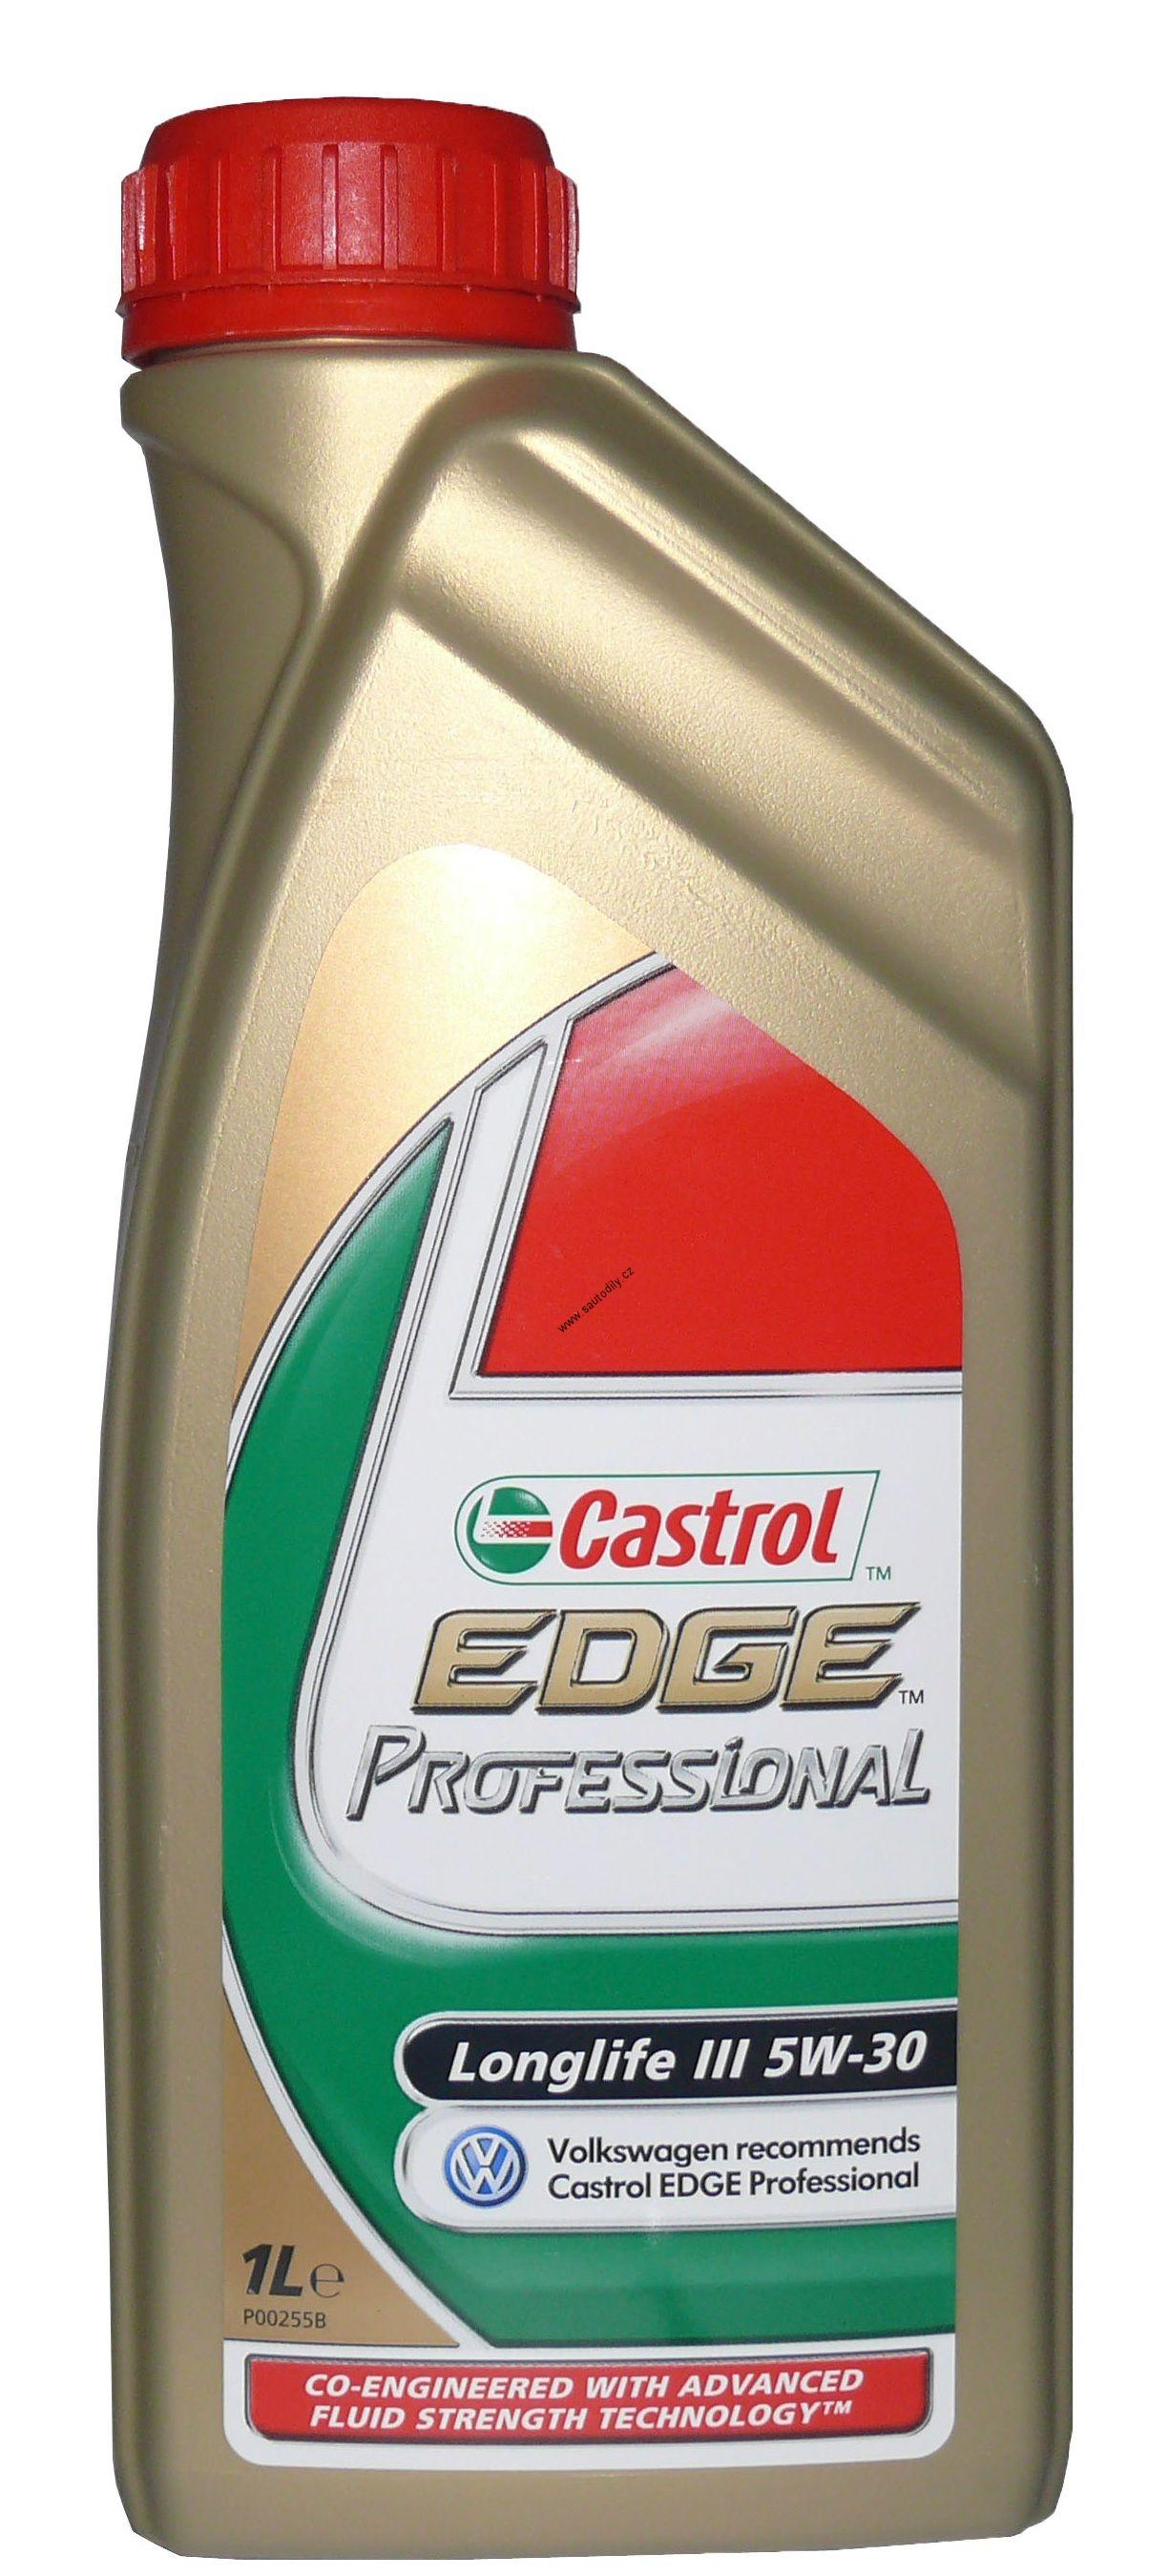 castrol 5w 30 edge professional long life iii. Black Bedroom Furniture Sets. Home Design Ideas